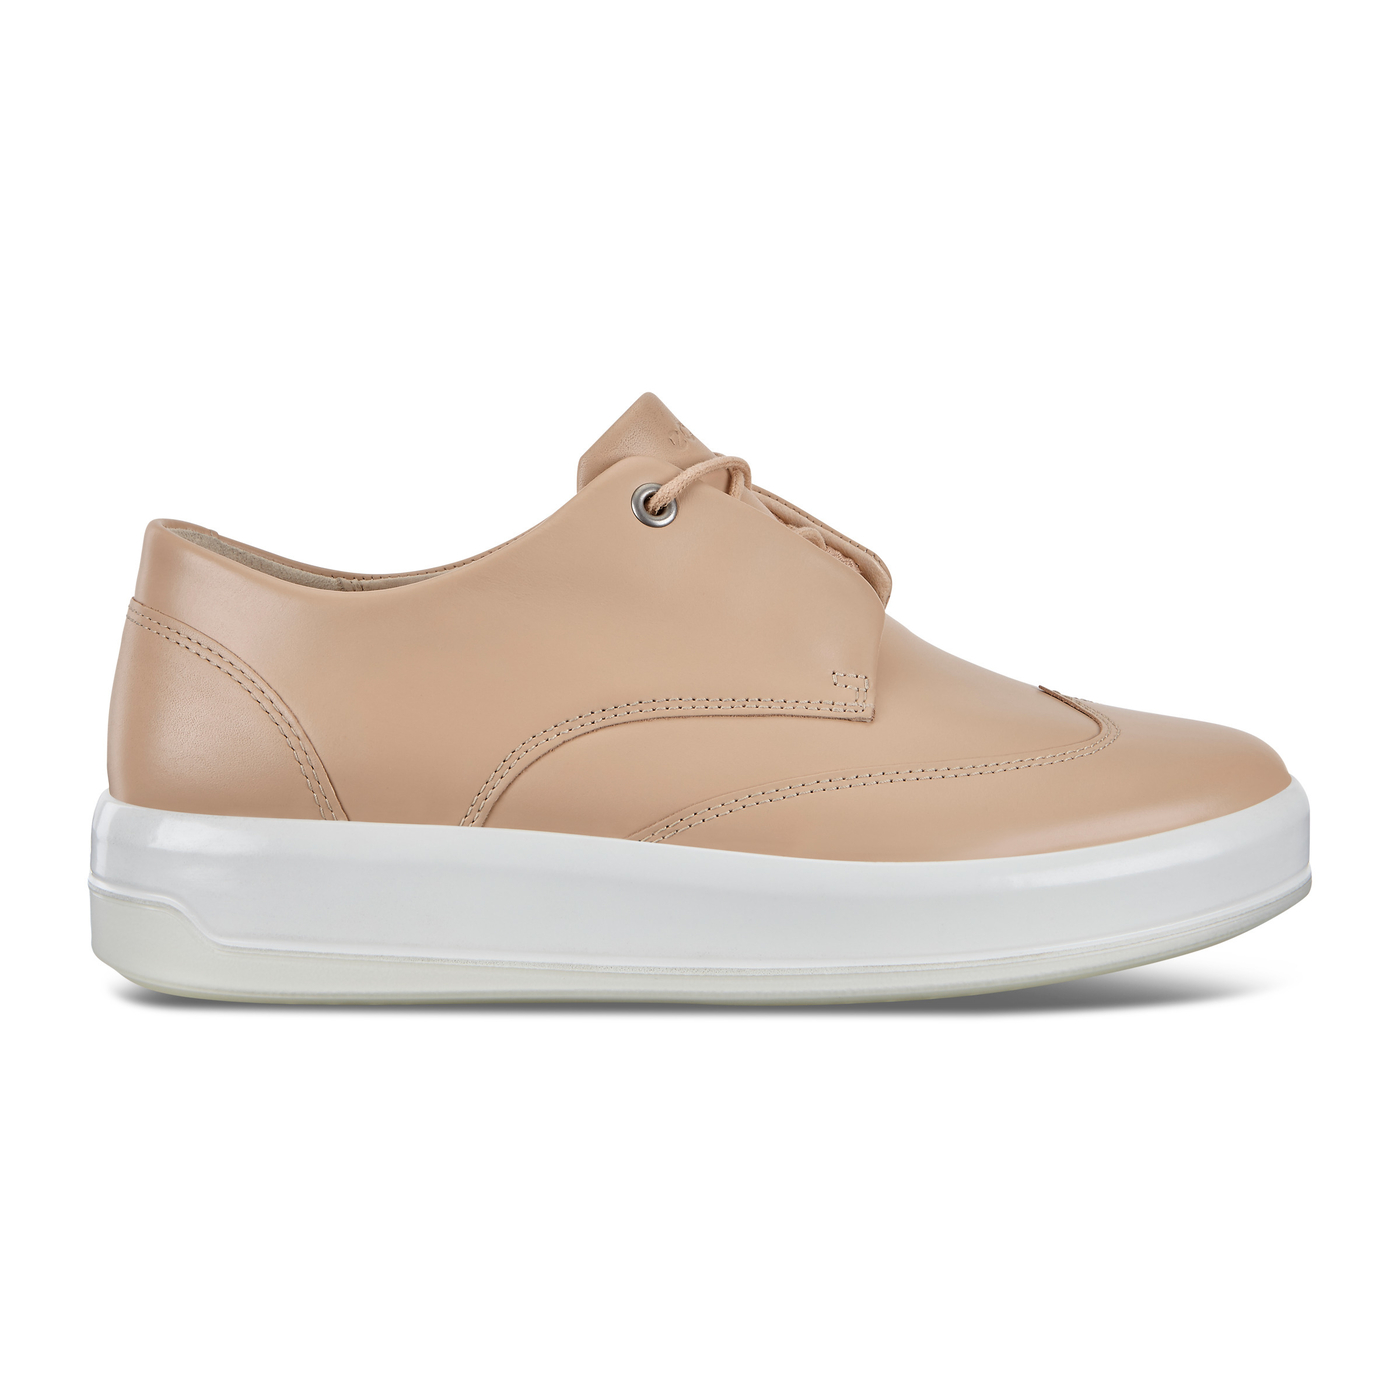 ECCO Womens Soft 9 Wing Tip